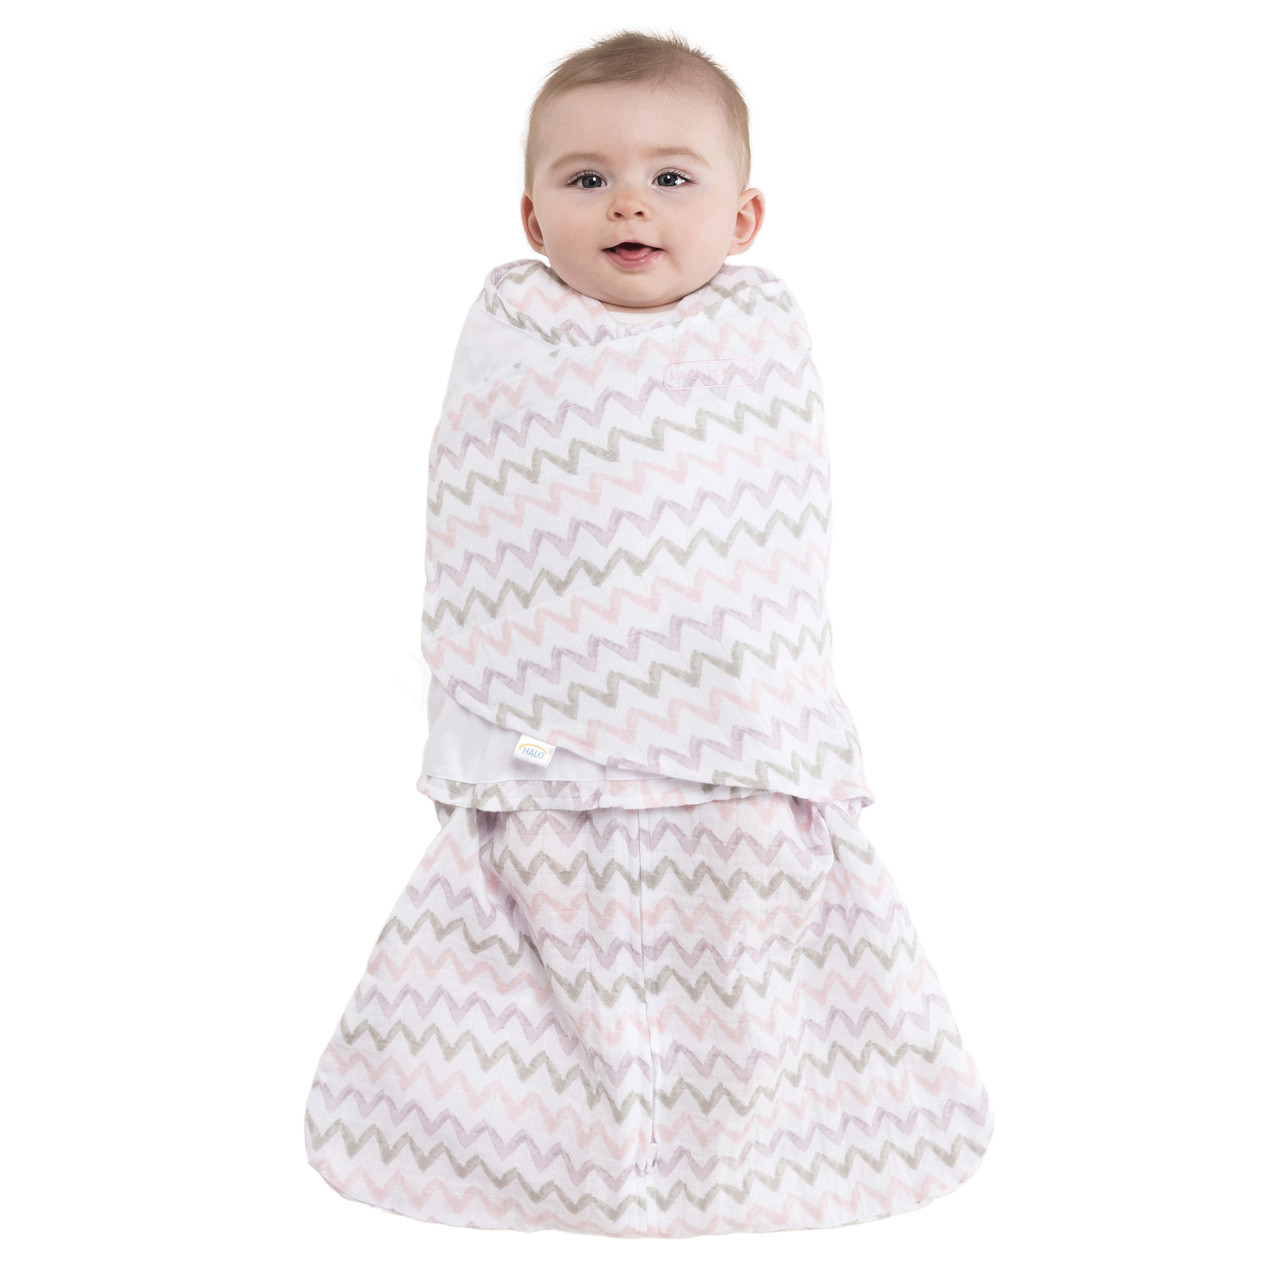 buy popular 414e2 e9910 HALO® SleepSack® swaddle 100% Cotton Muslin | Chevron Pink